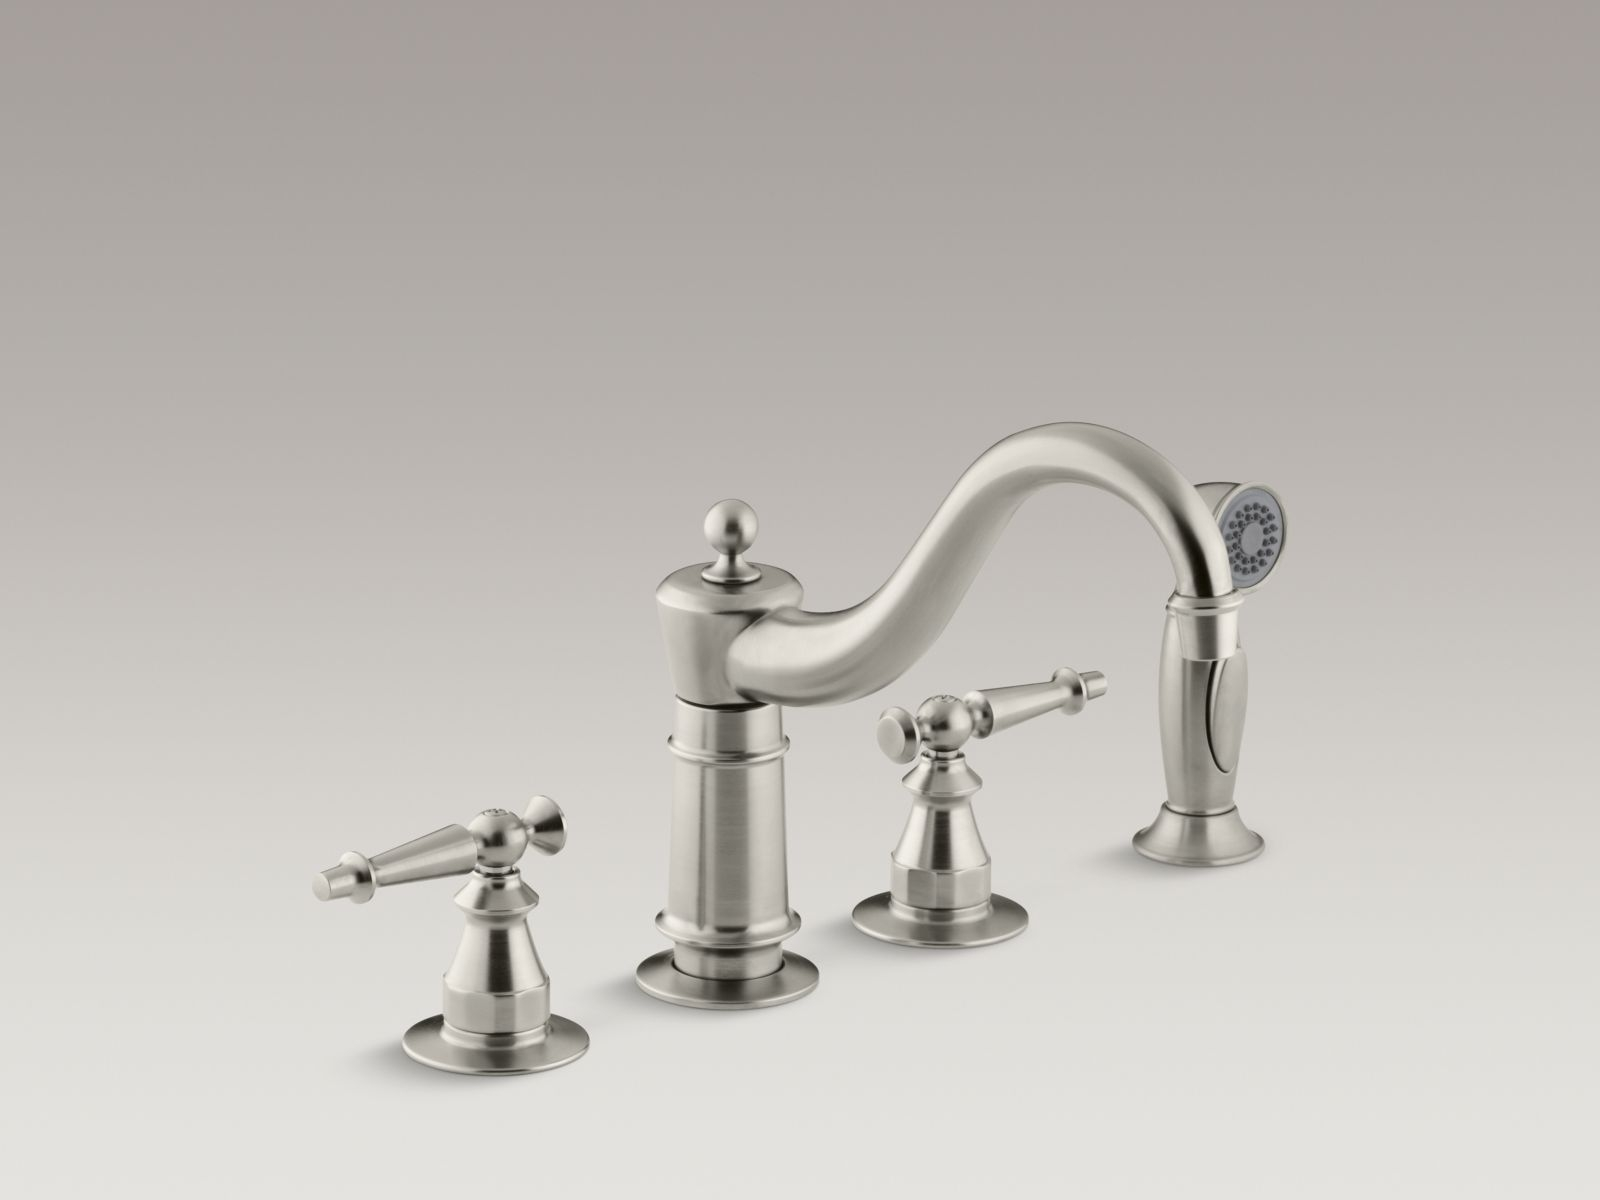 Ideas, kitchen elegant brushed nickel kitchen faucet for your kitchen in measurements 1600 x 1200  .